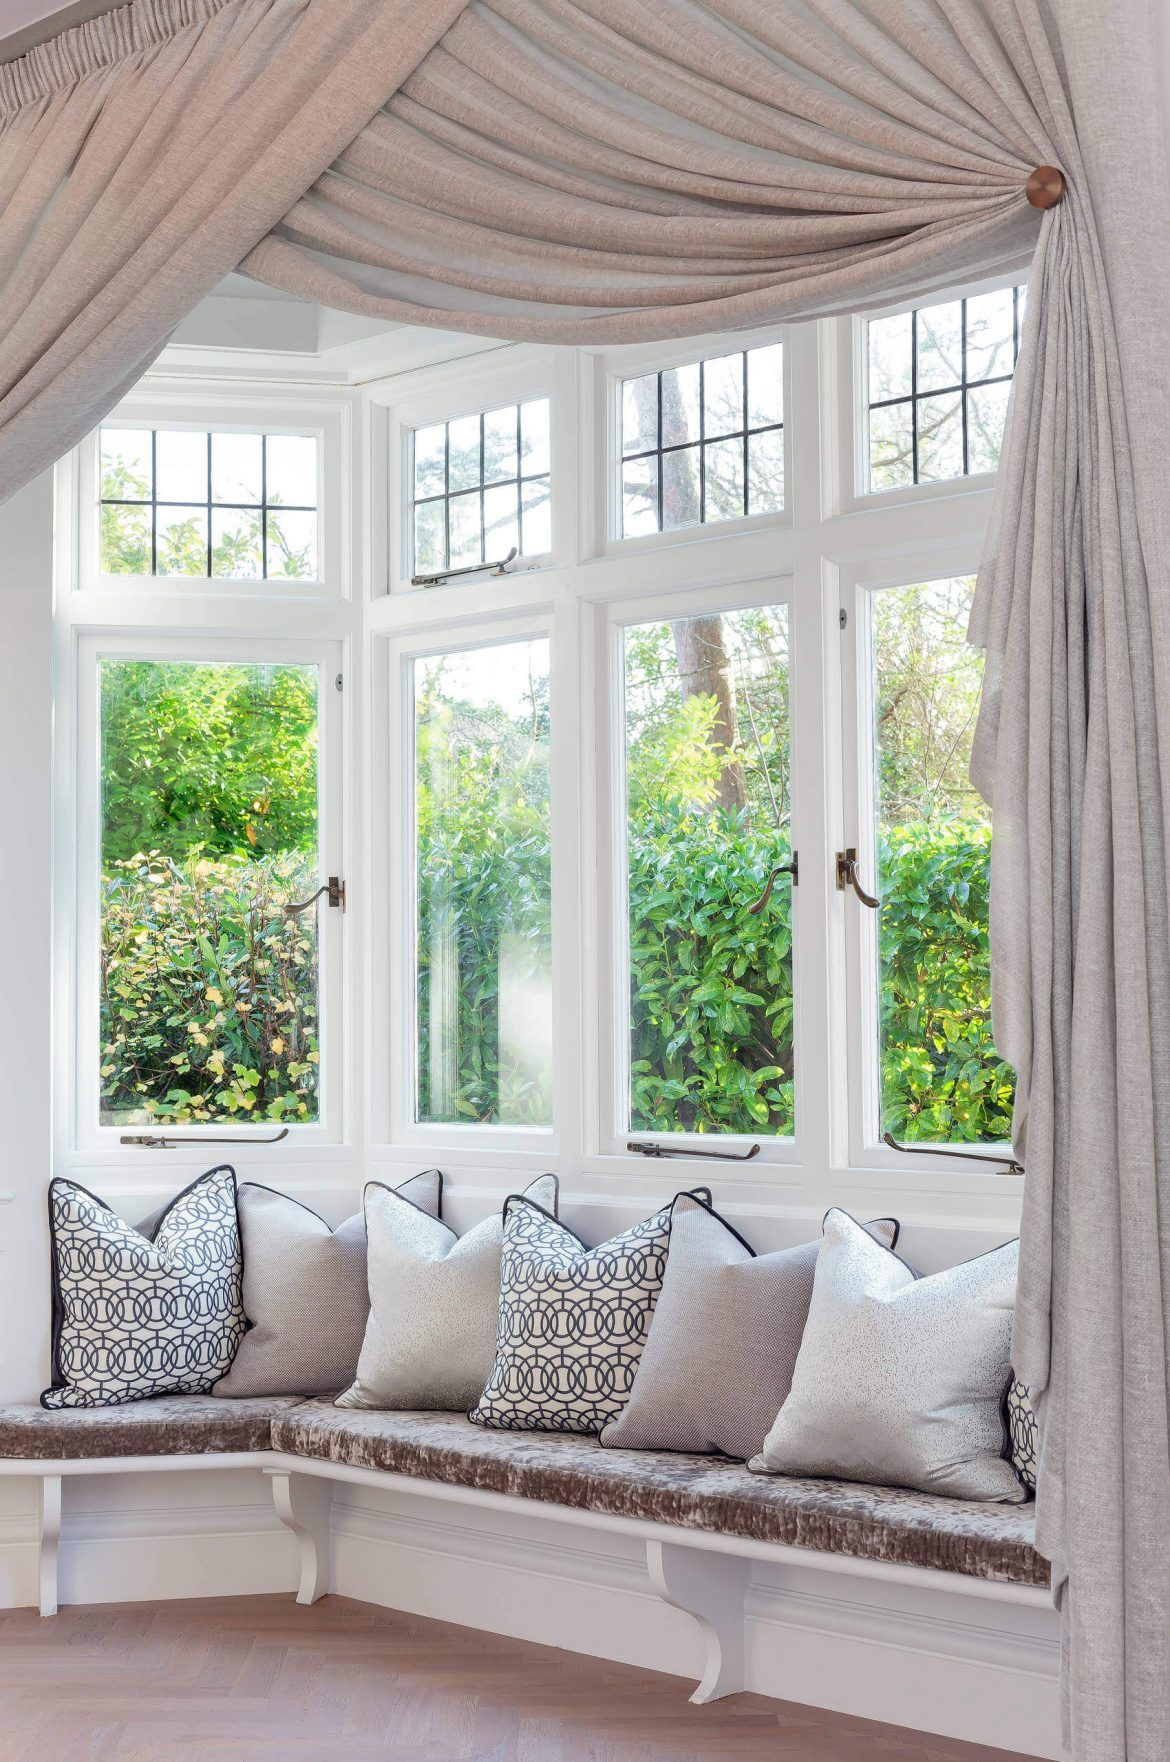 8 Perfect Ideas For Bay Window Curtains 2020 Buying Guide Window Treatments Living Room Living Room Windows Bay Window Living Room